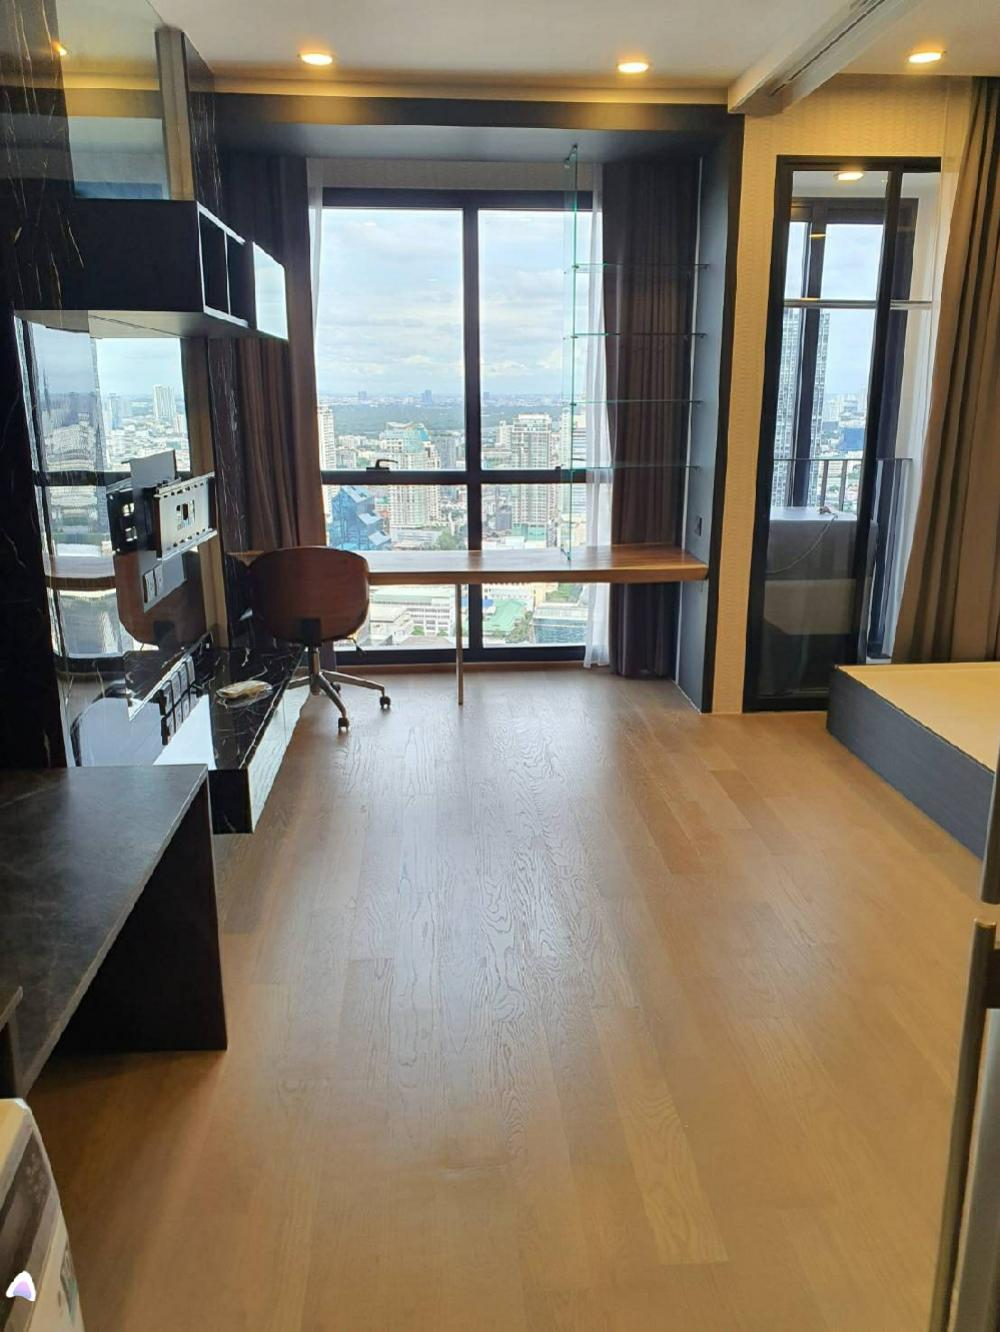 For SaleCondoSiam Paragon ,Chulalongkorn,Samyan : Want to sell covid. Ashton Chula Silom, 1 bedroom, beautiful view, east / south, fully furnished + electric appliances. The most beautiful in the building. 0626562896 Ray